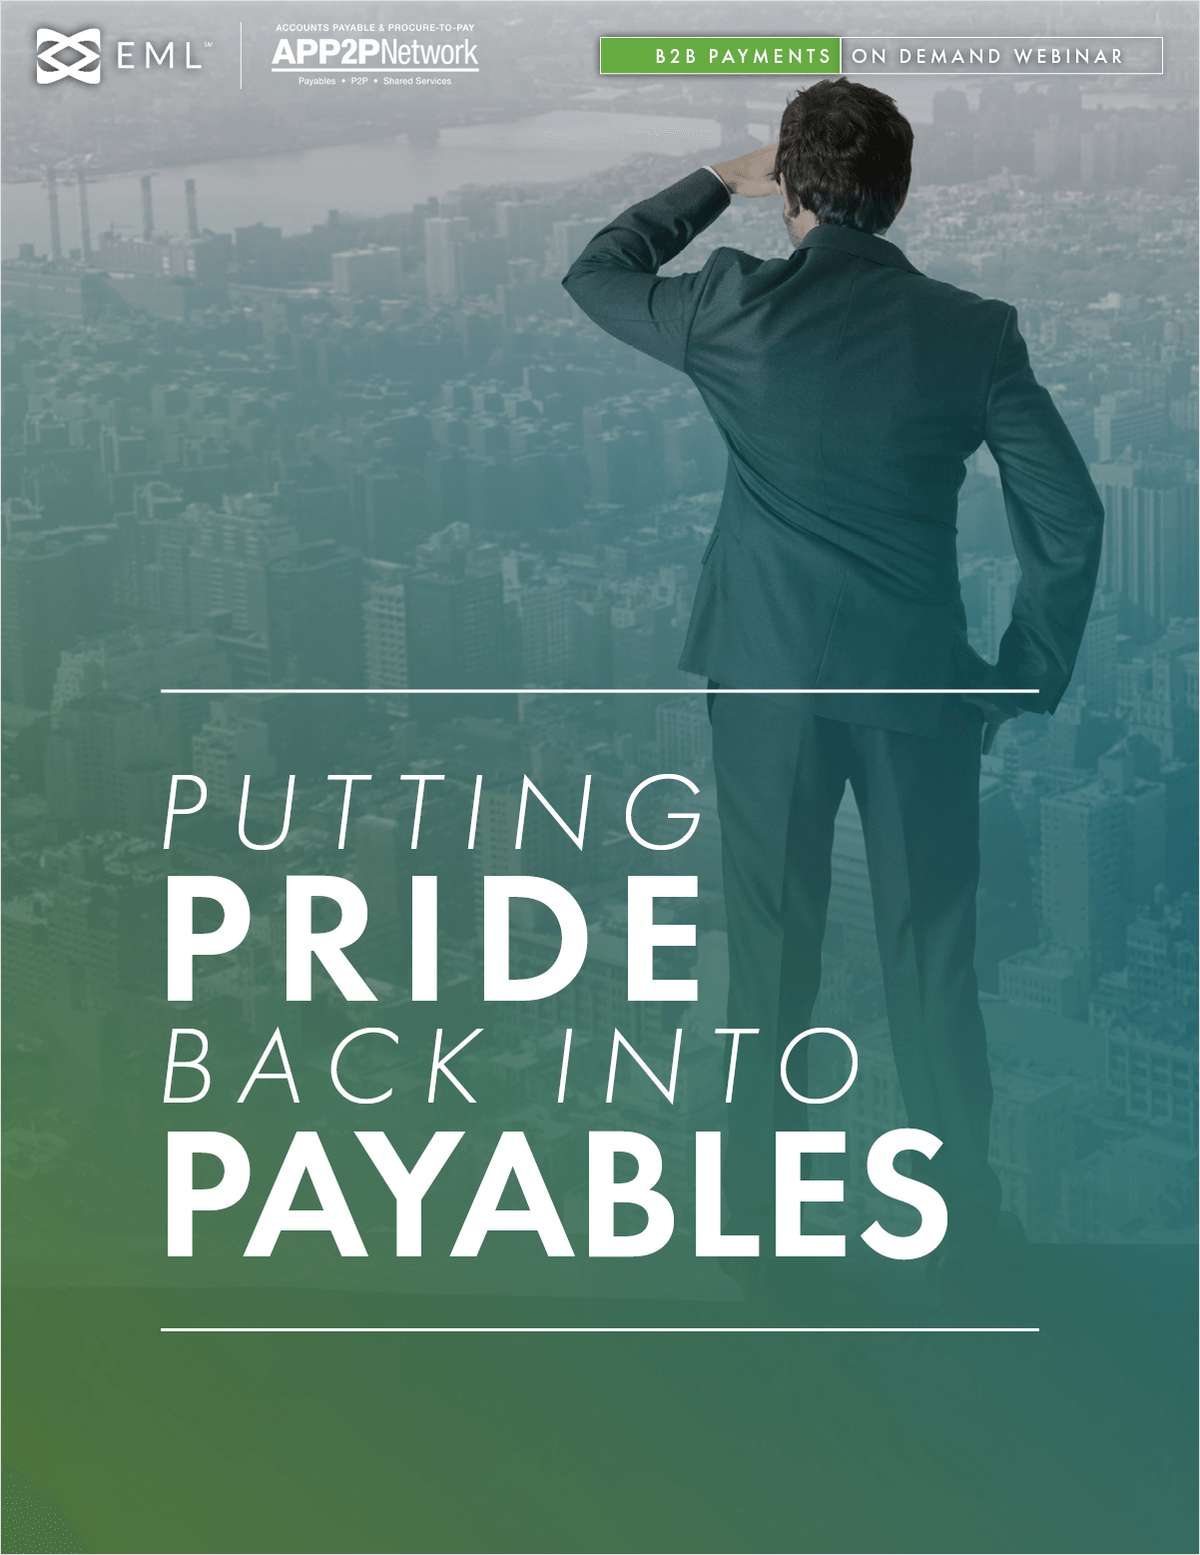 Recorded Webinar: Putting Pride Back into Payables